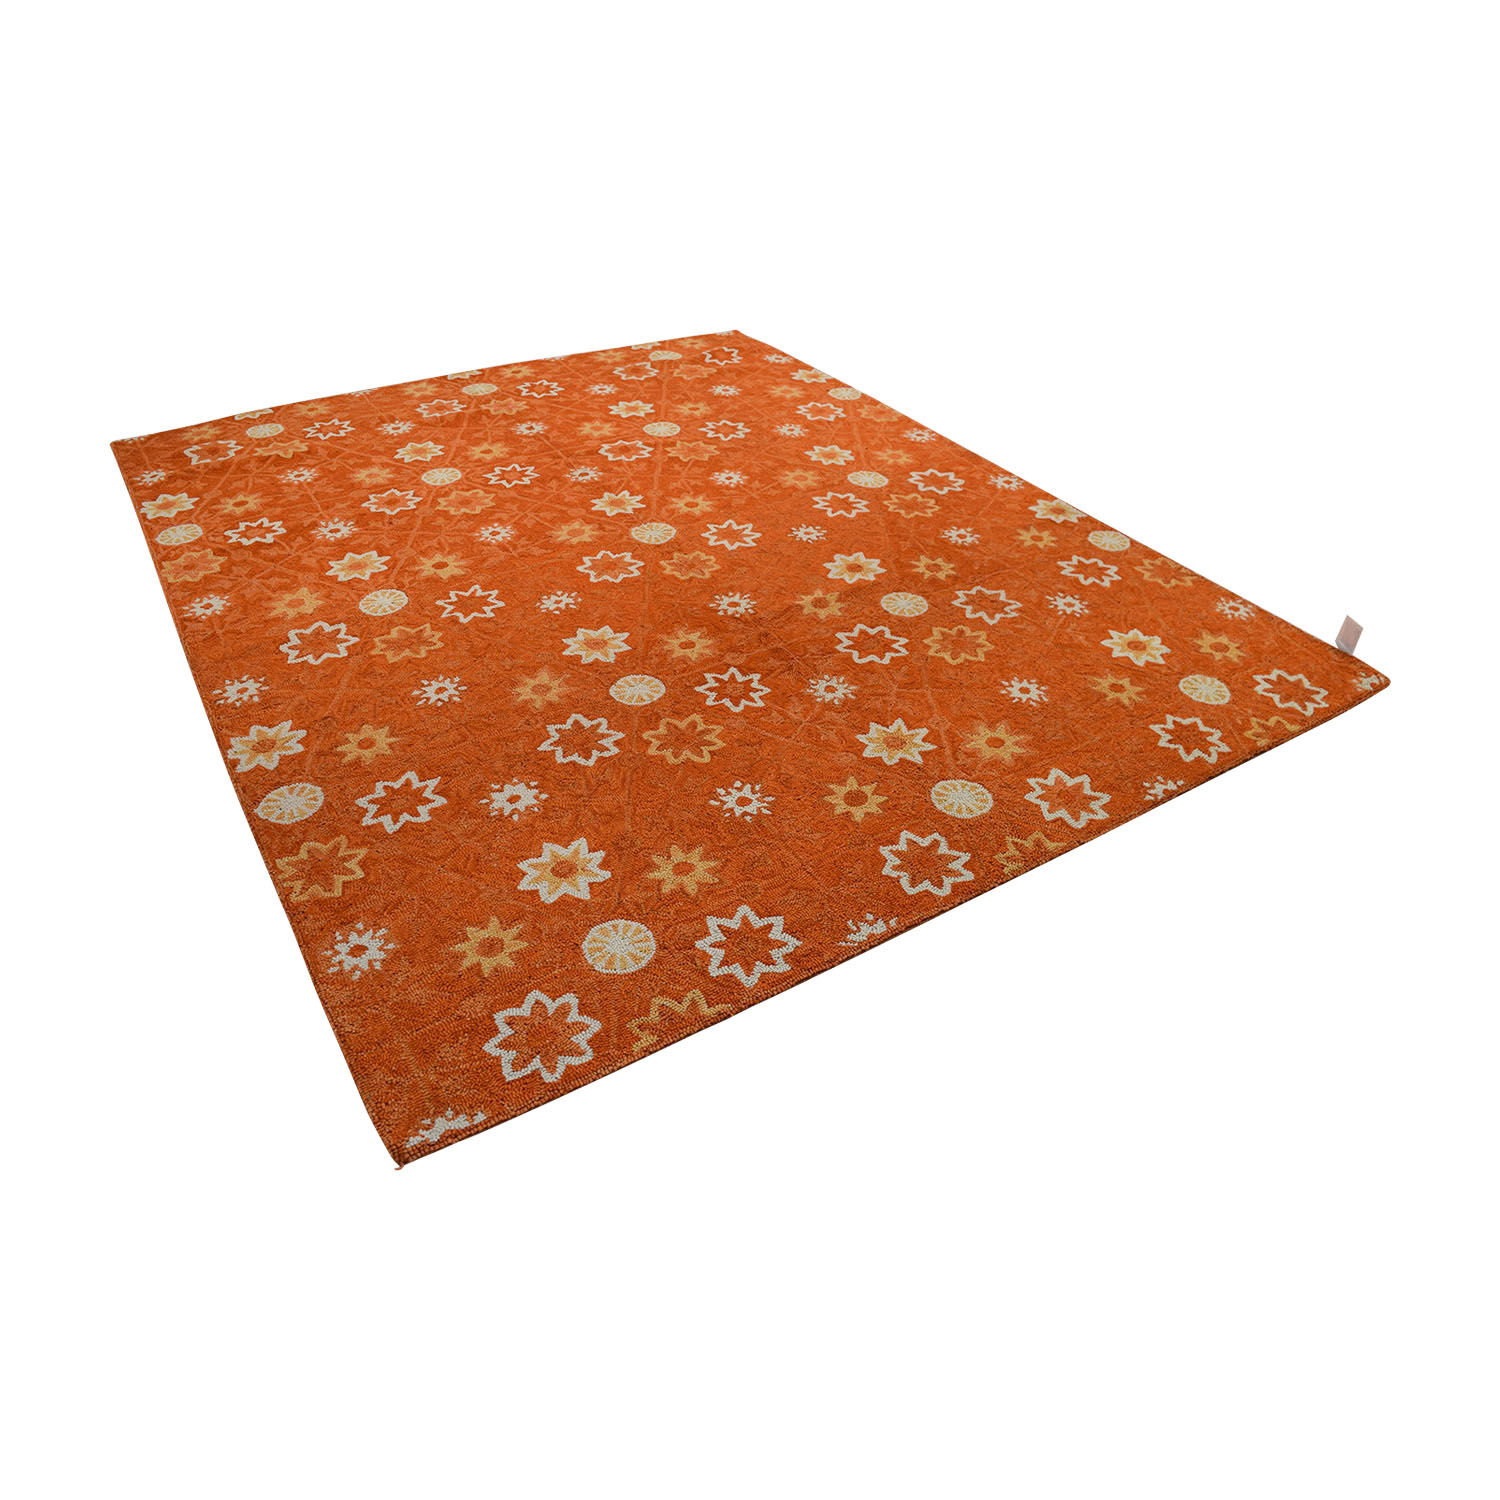 buy Obeetee Orange White Floral Rug Obeetee